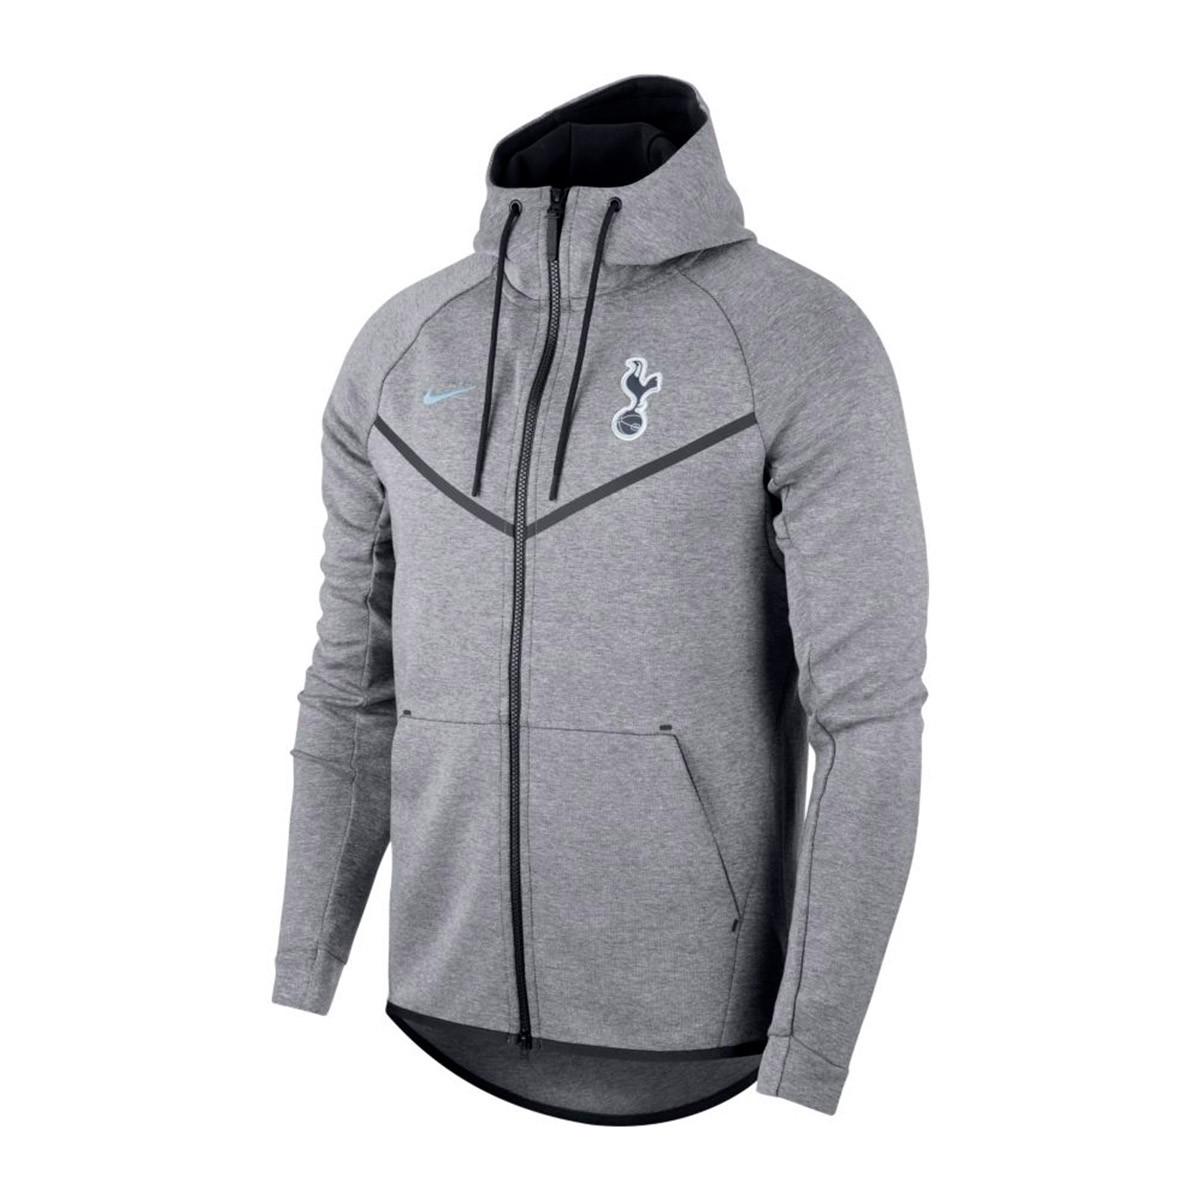 7846fb7f1 Sweatshirt Nike Tottenham FC NSW 2017-2018 Carbon heather-LT armory ...